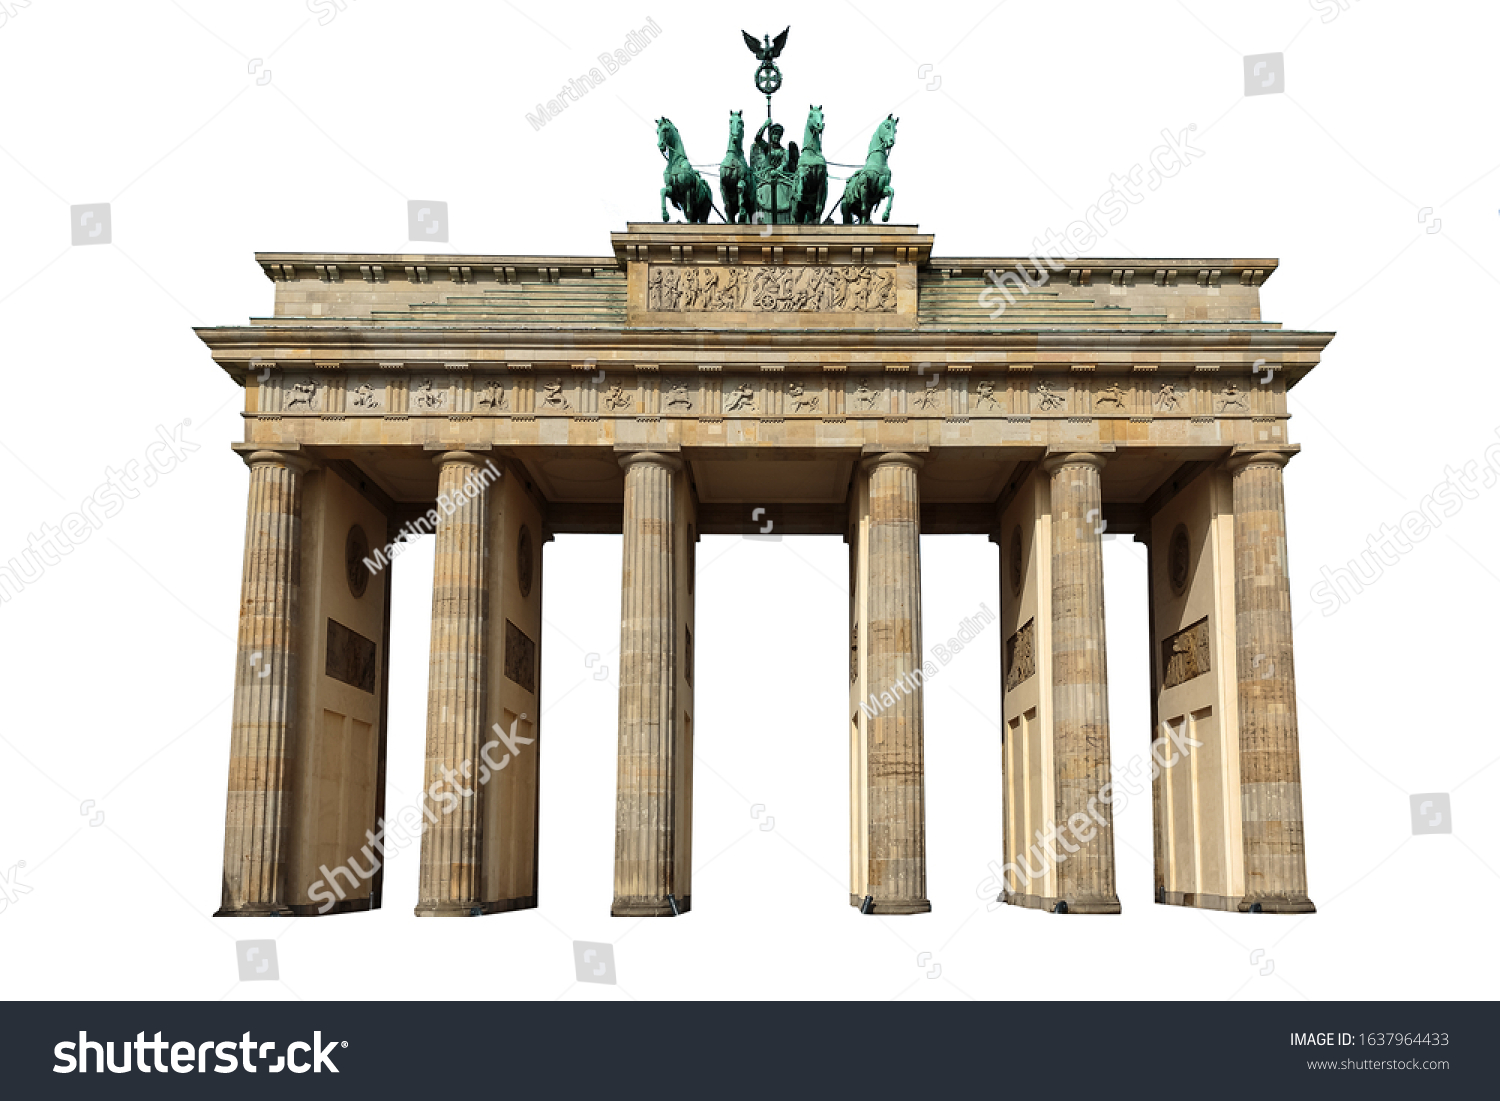 The Brandenburg Gate (German: Brandenburger Tor) isolated on white background. It is an 18th-century neoclassical monument in Berlin. #1637964433